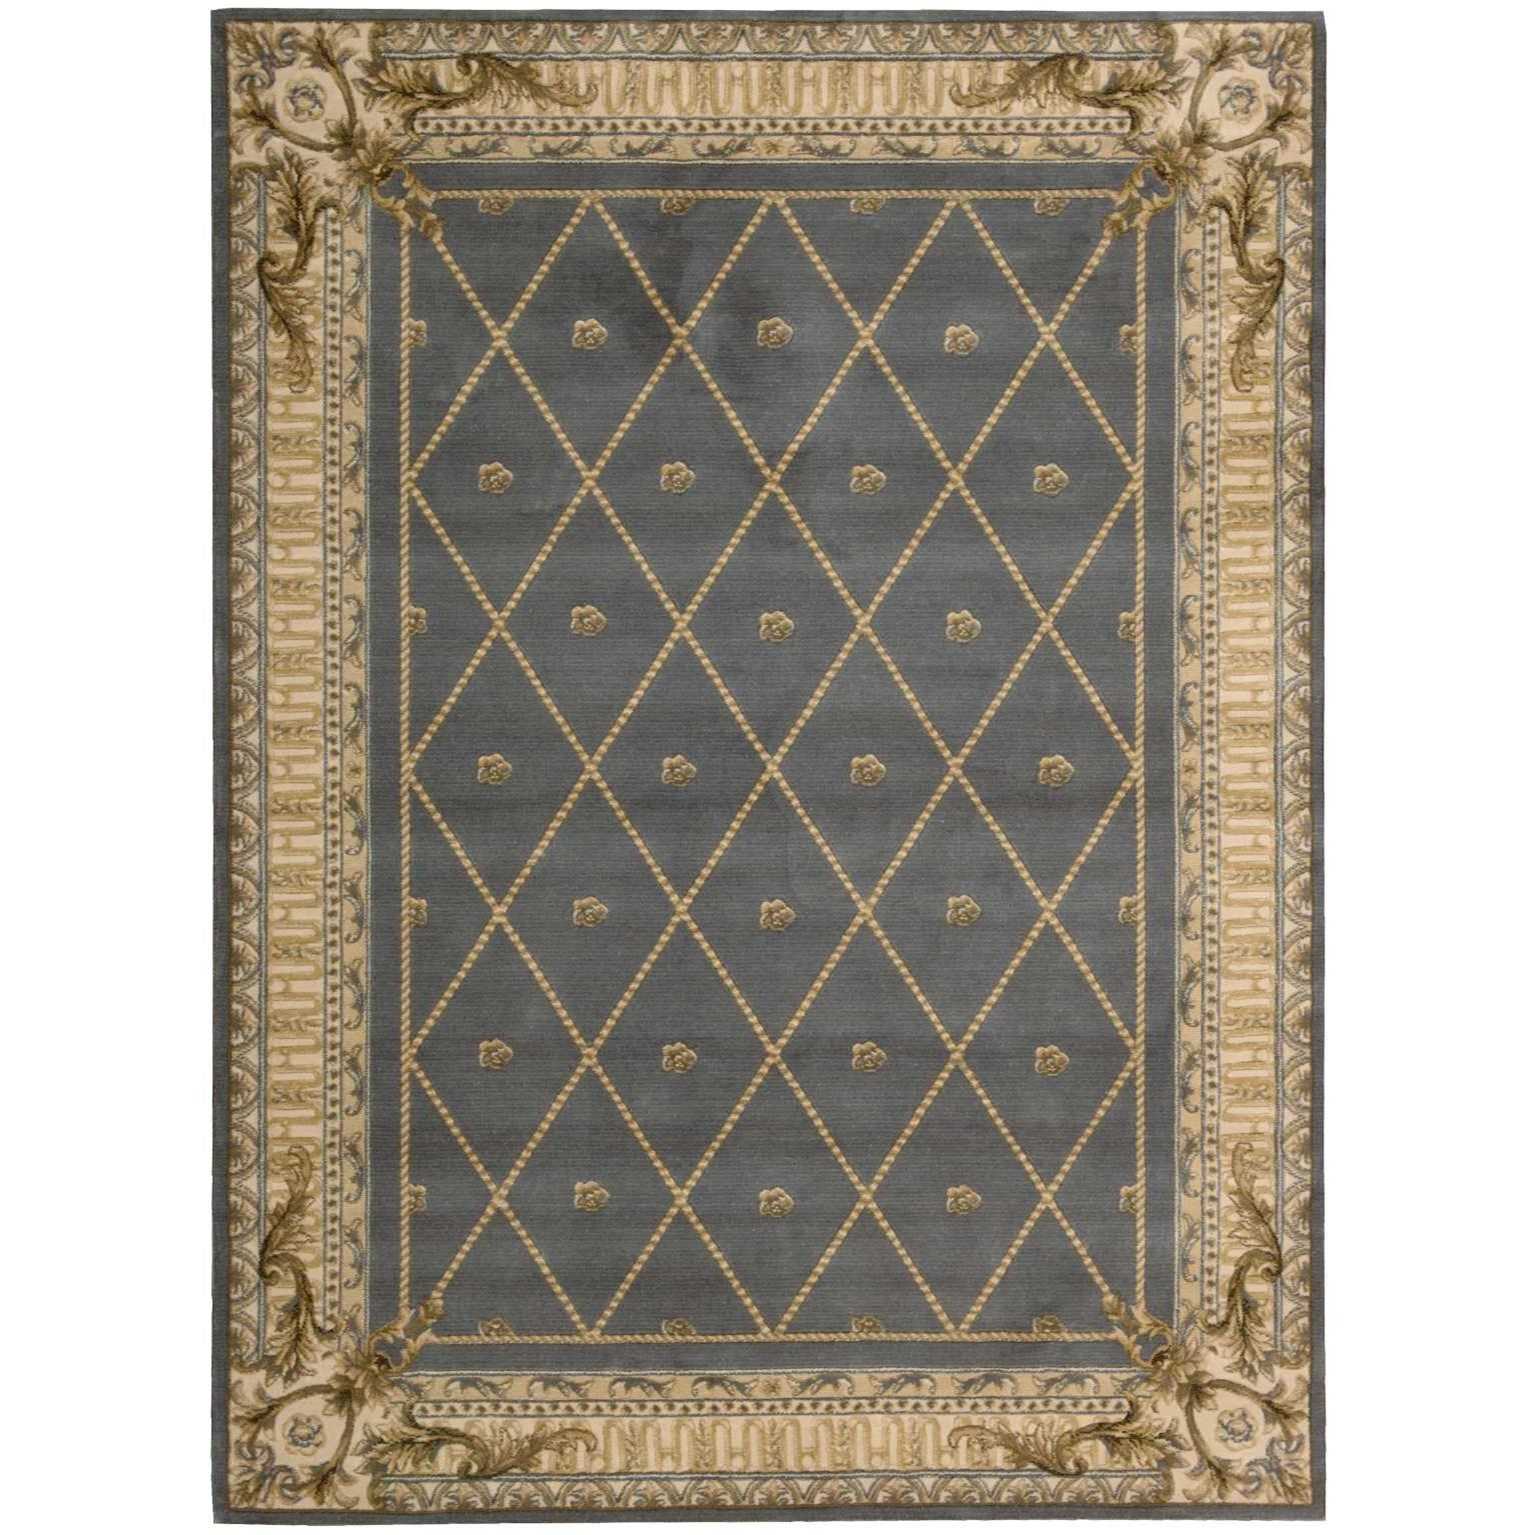 "Ashton House 5'6"" x 7'5"" Blue Rectangle Rug by Nourison at Home Collections Furniture"